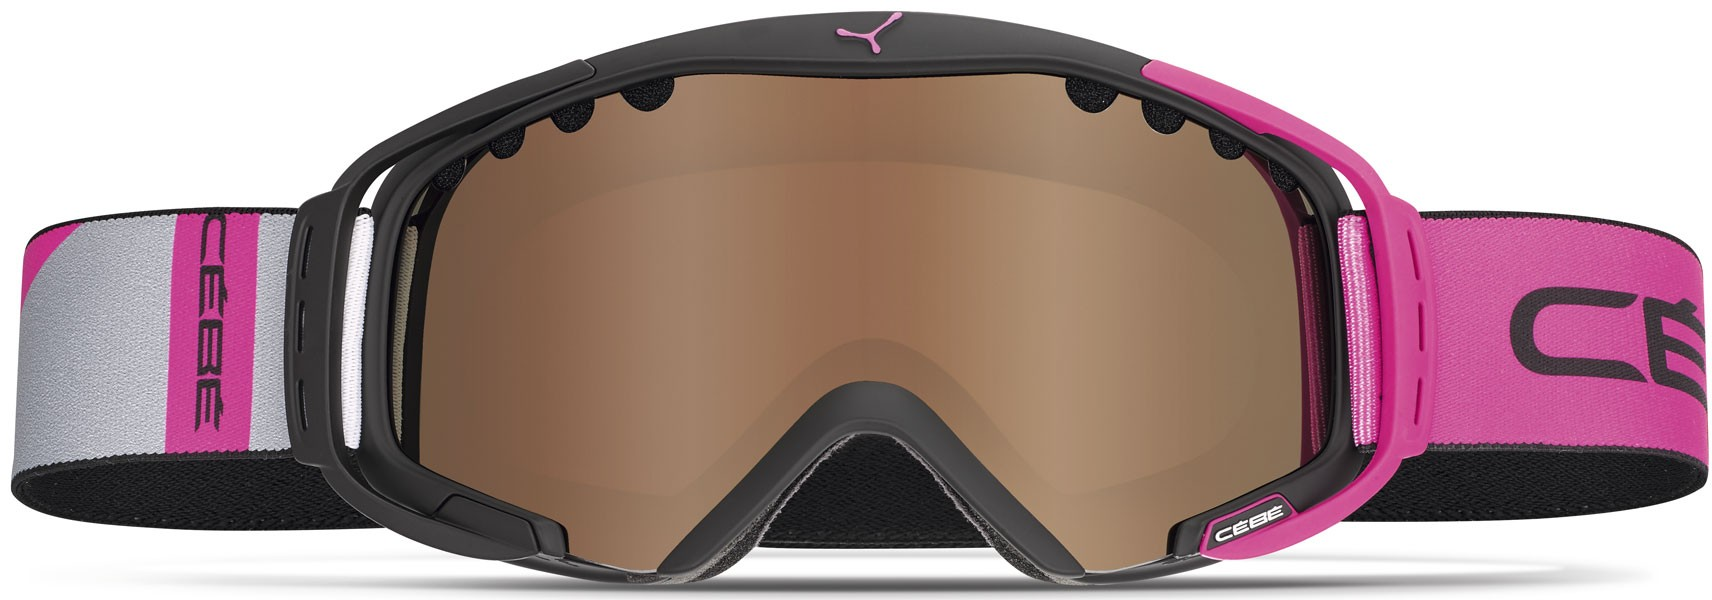 bbedeb7525 Hurricane M White / Light Rose Flash Gold - Gafa Deportiva